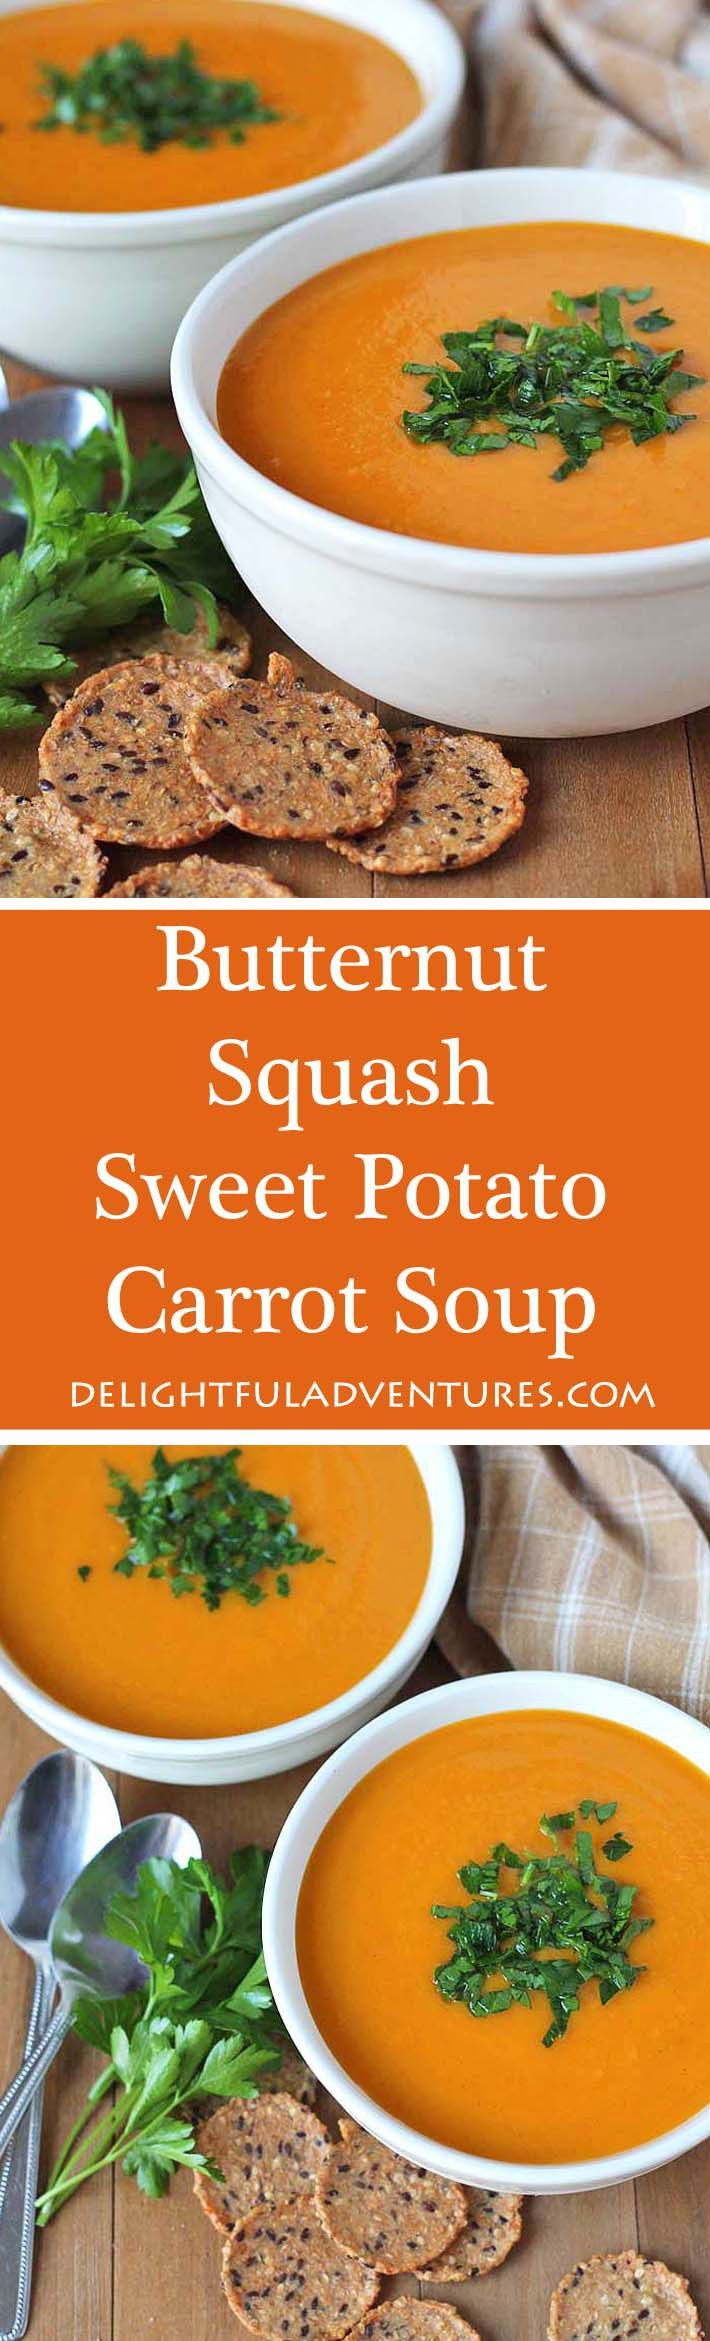 A simple, easy recipe for slow cooker vegan butternut squash sweet potato carrot soup. Perfect to have during fall or on a cold winter's day.